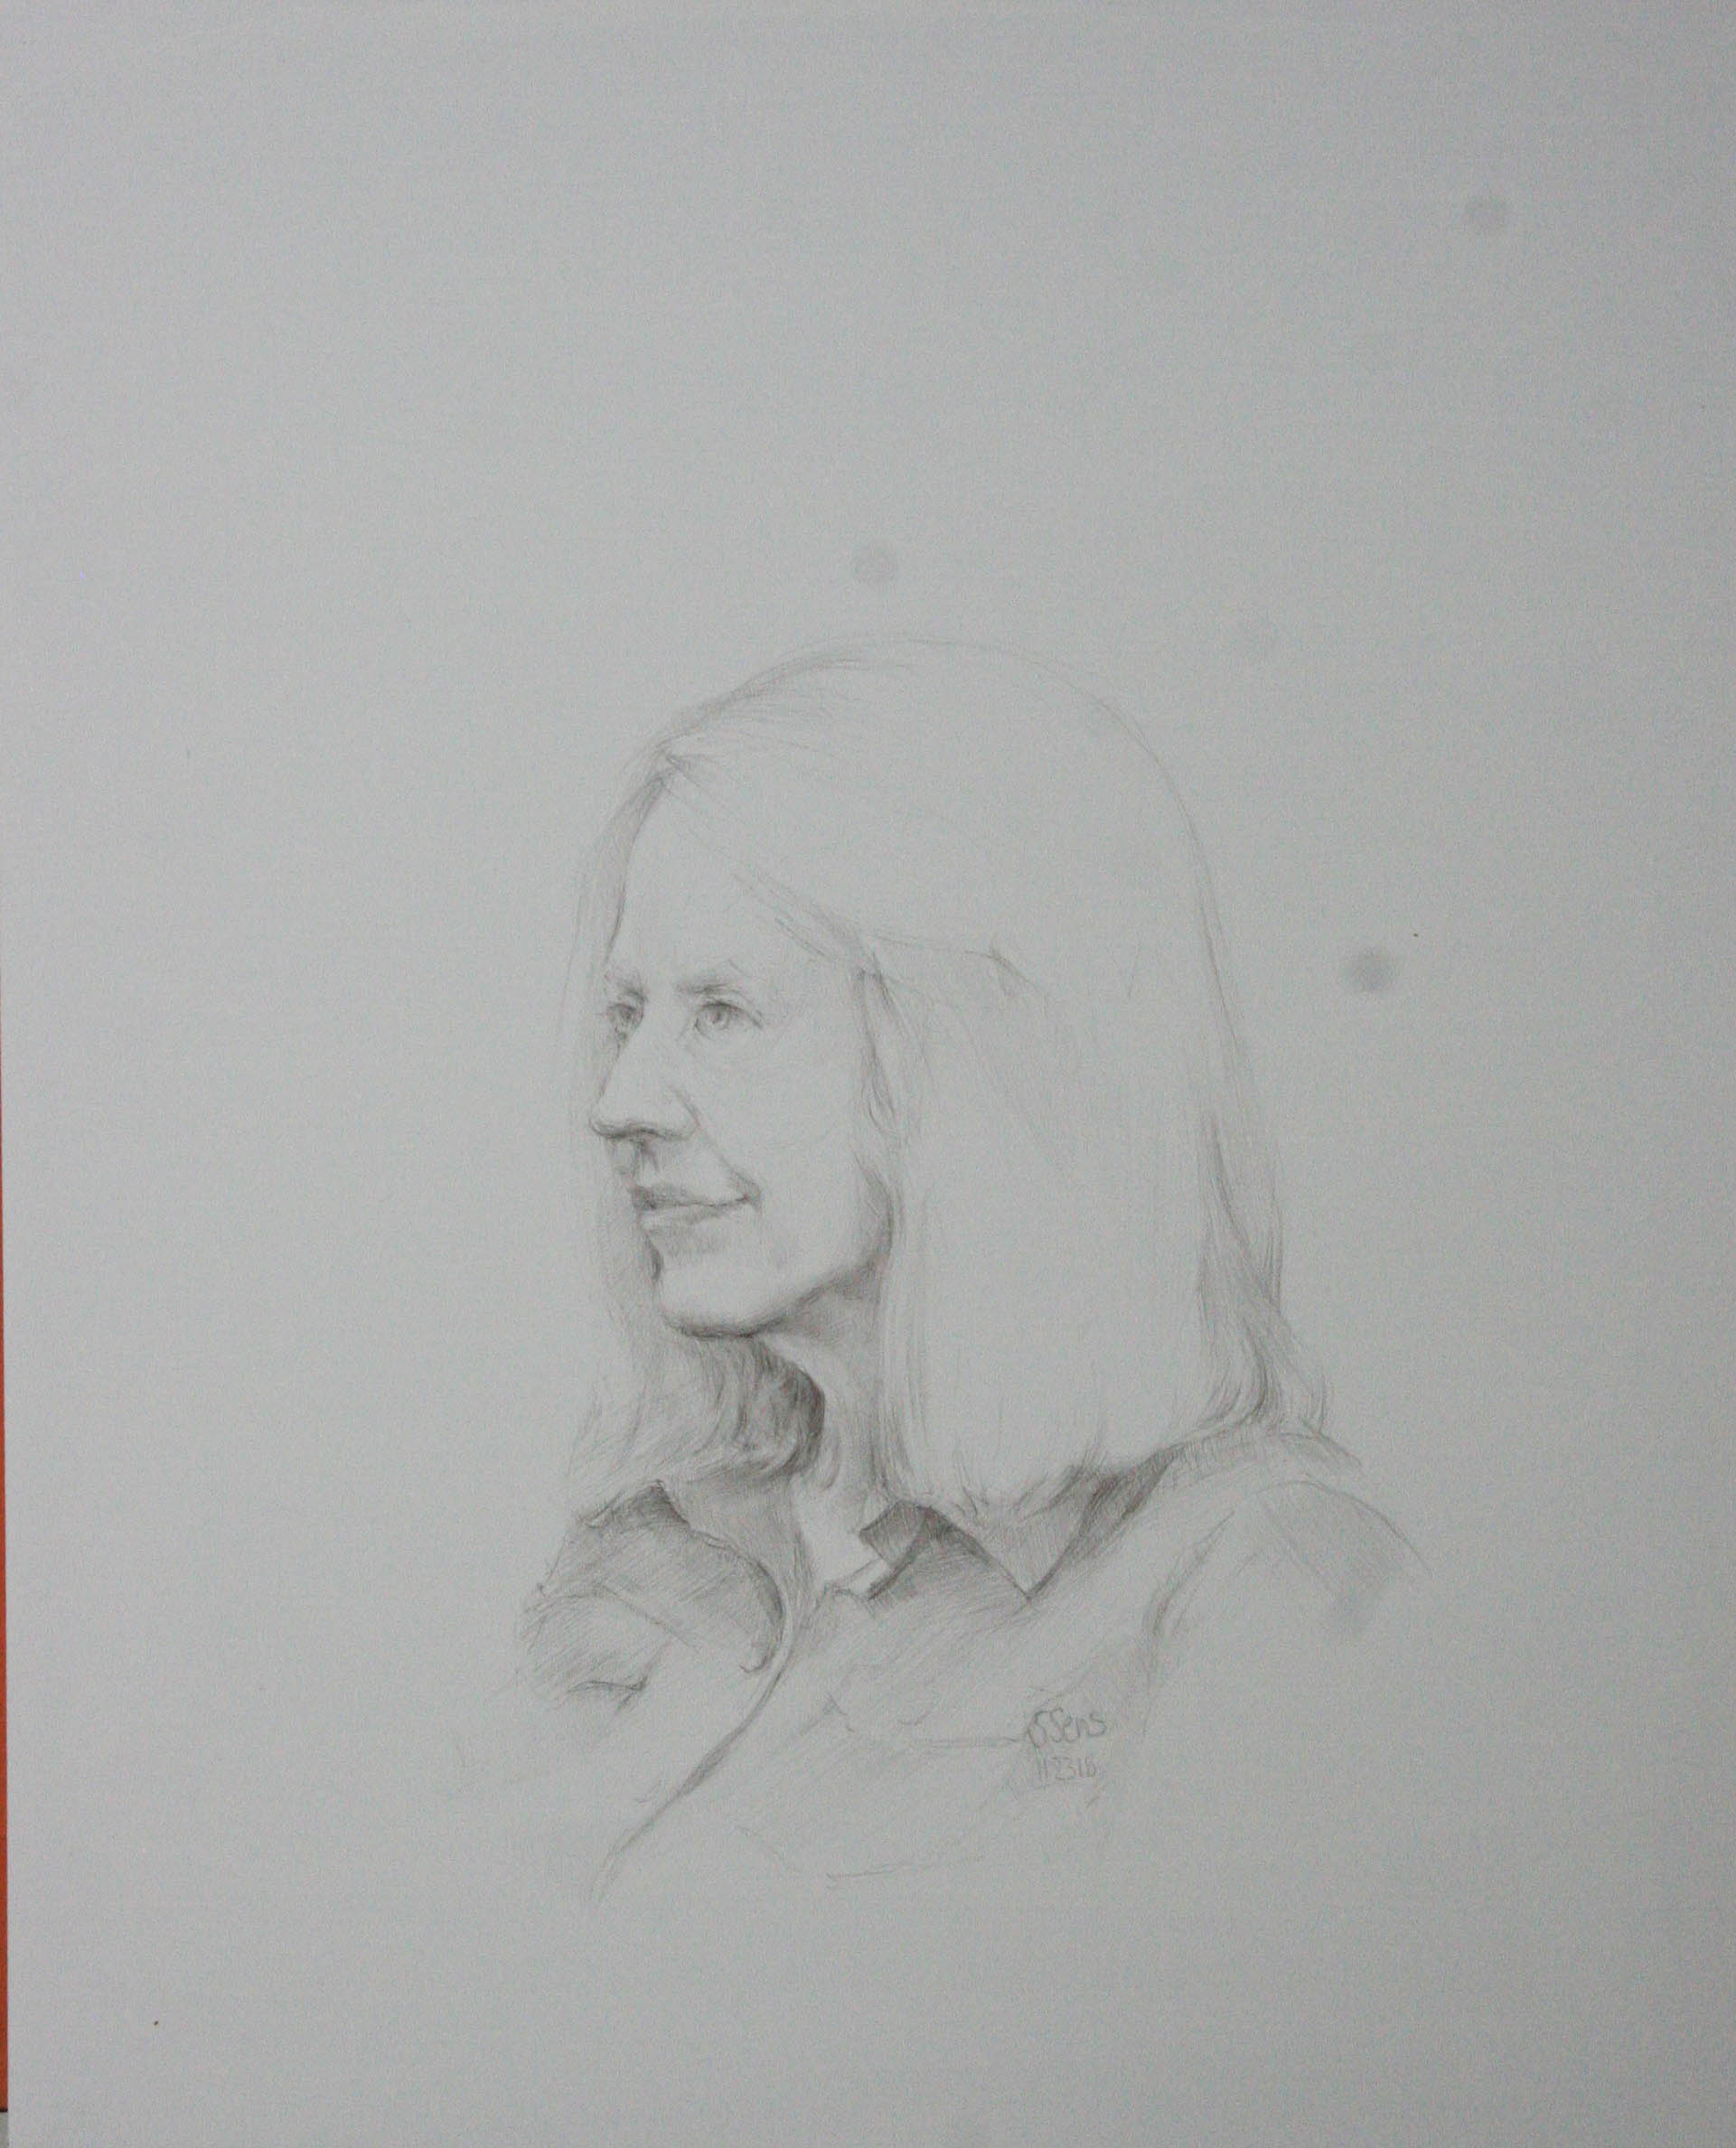 Steve Sens did this silverpoint drawing.